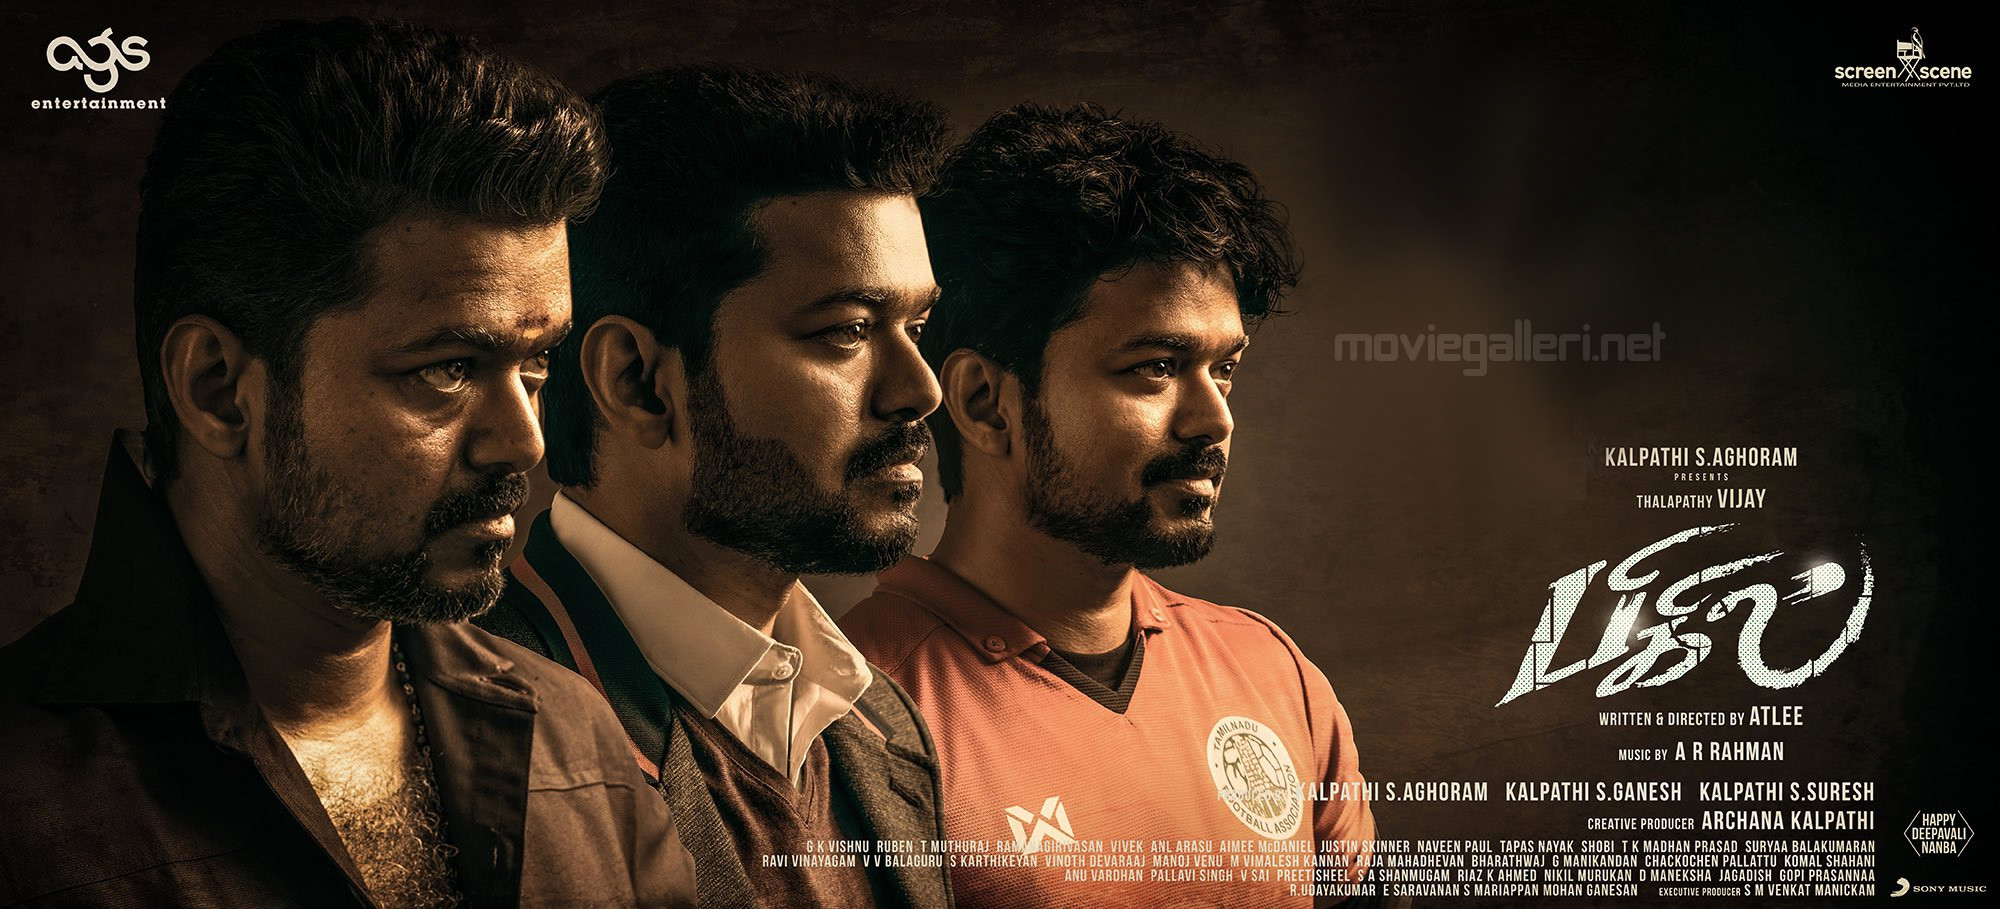 Vijay Bigil Movie Podra Vediya Oct 25 Poster HD